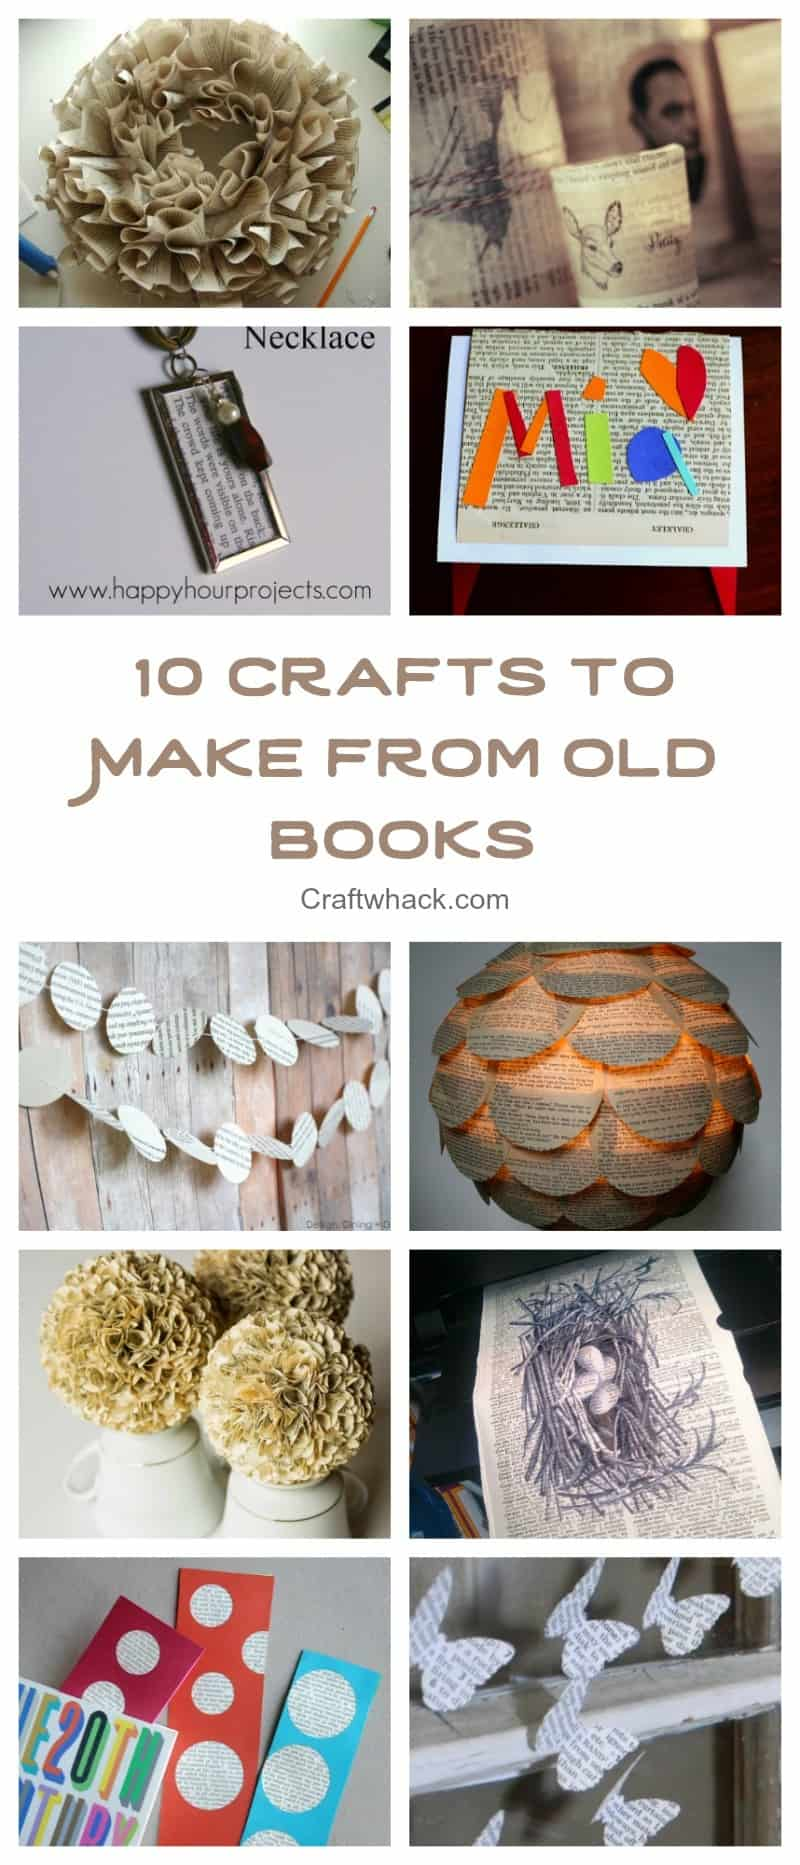 10 excessively creative projects to make from or with old books. Time to raid the thrift stores.